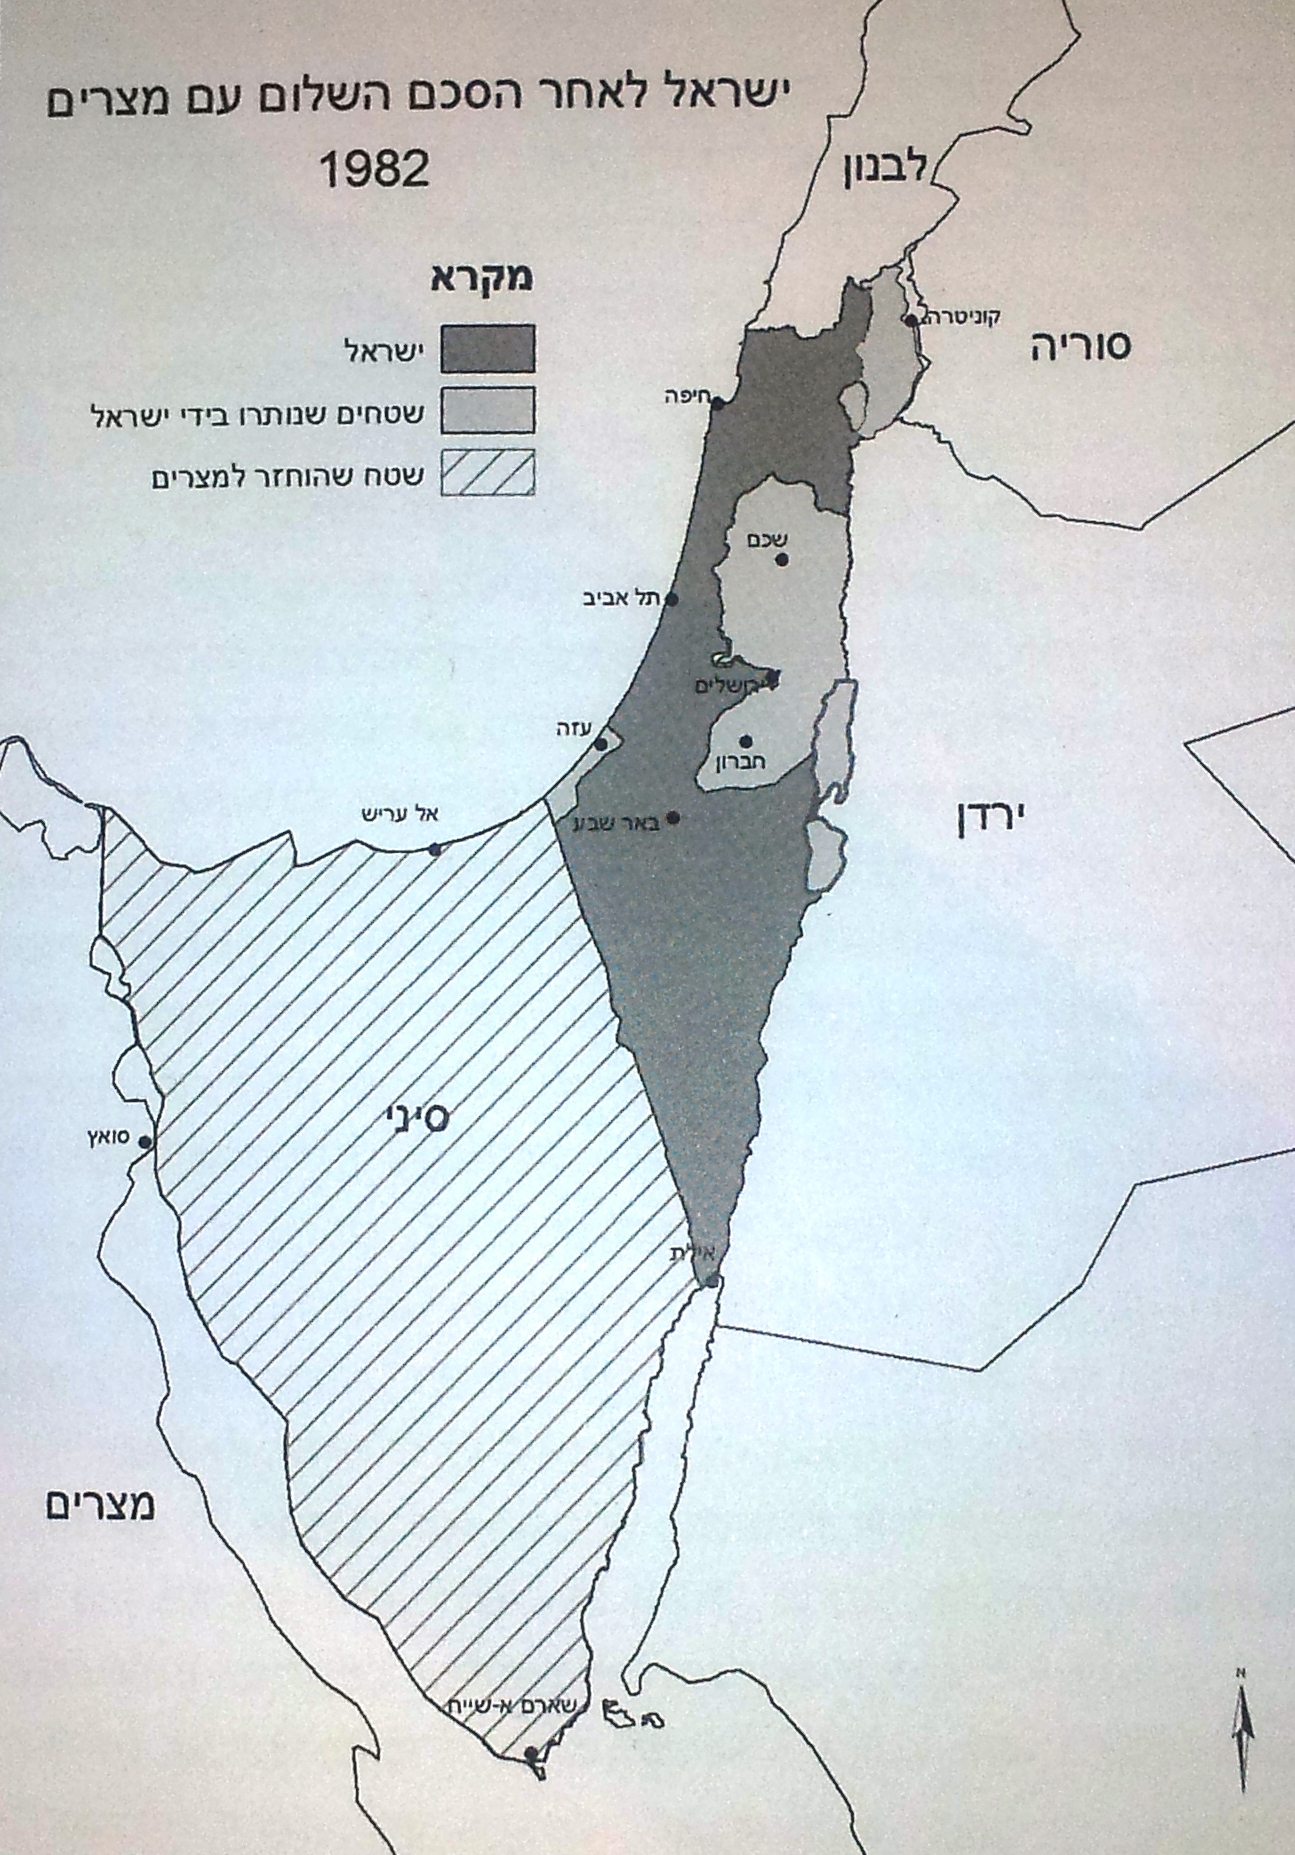 Israel-Egypt Peace Treaty - Map - Hebrew (1979)